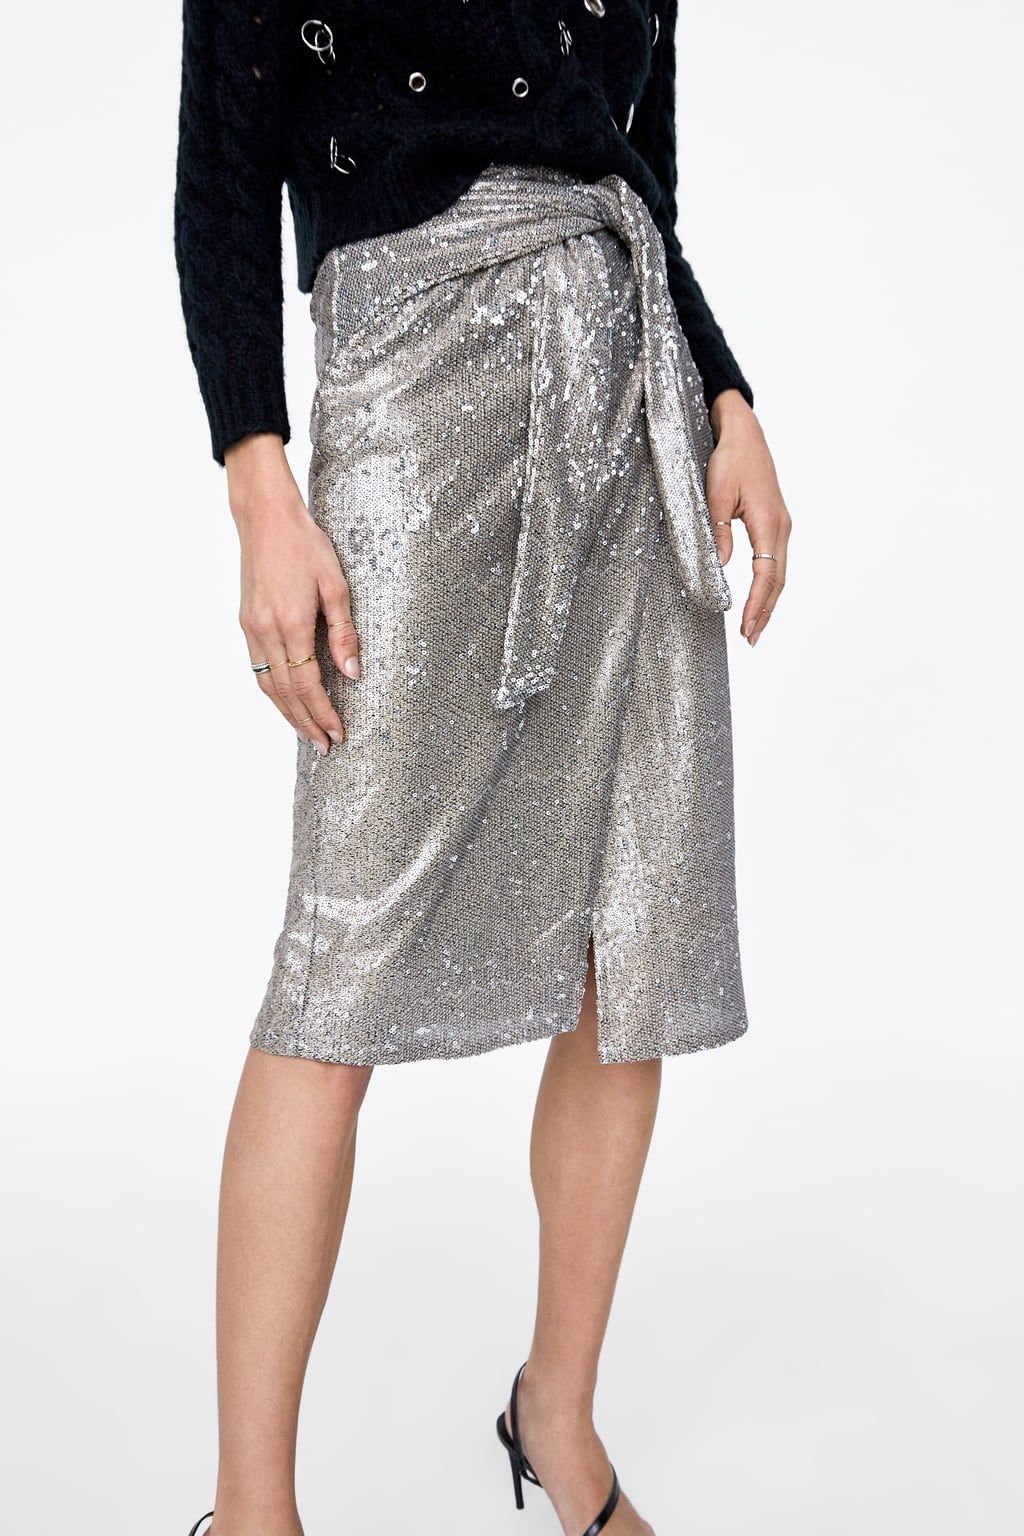 16548f9eb0 Image 2 of KNOTTED SEQUIN SKIRT from Zara